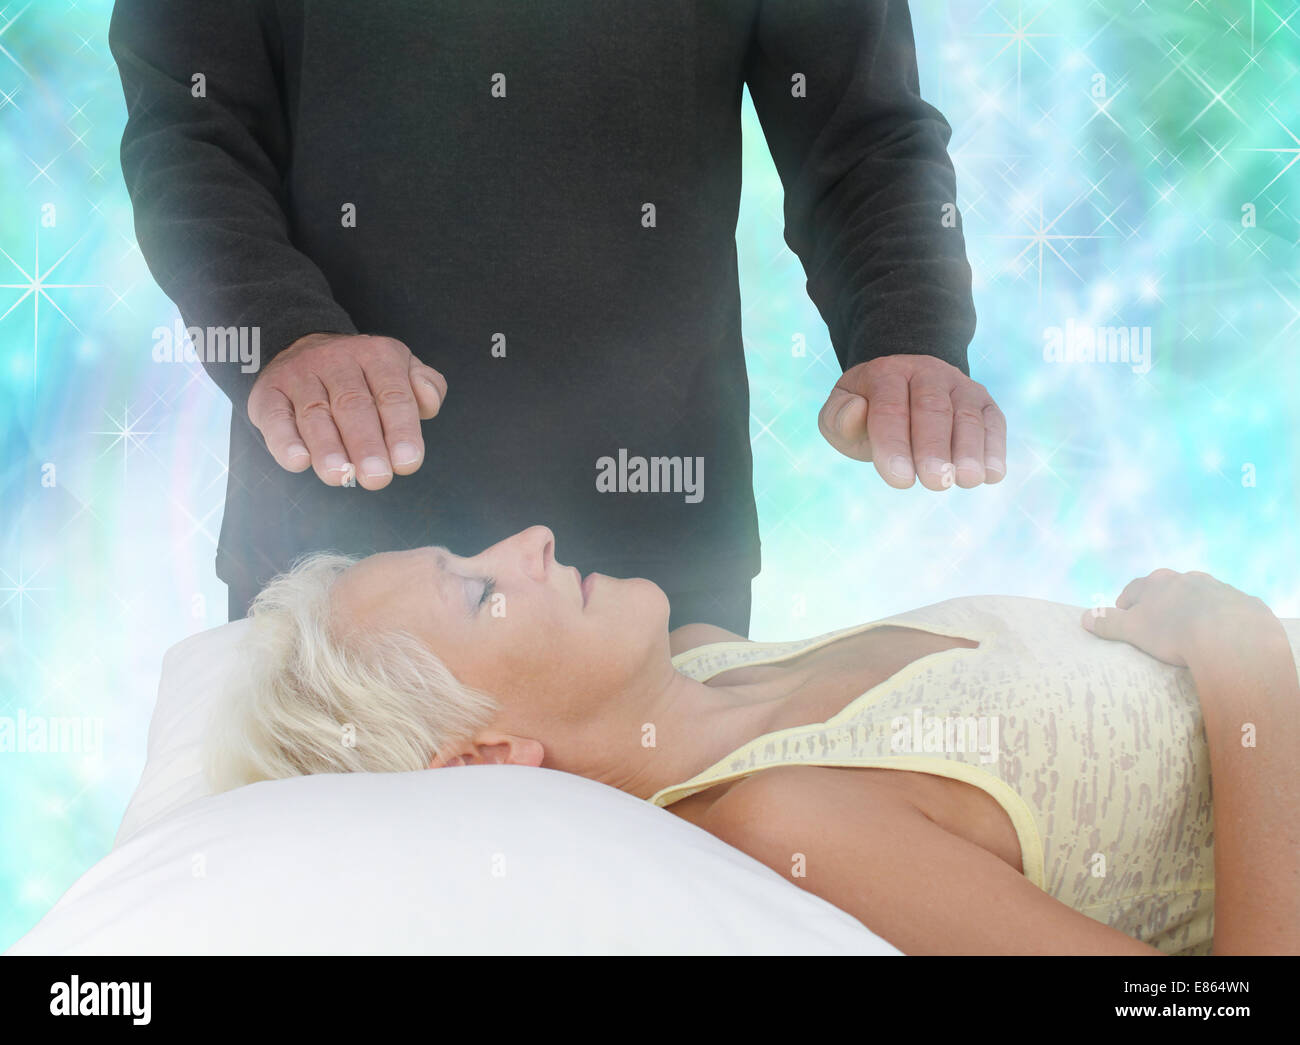 Female lying with eyes closed and male healer with hands hovering channeling energy in misty sparkling green energy - Stock Image